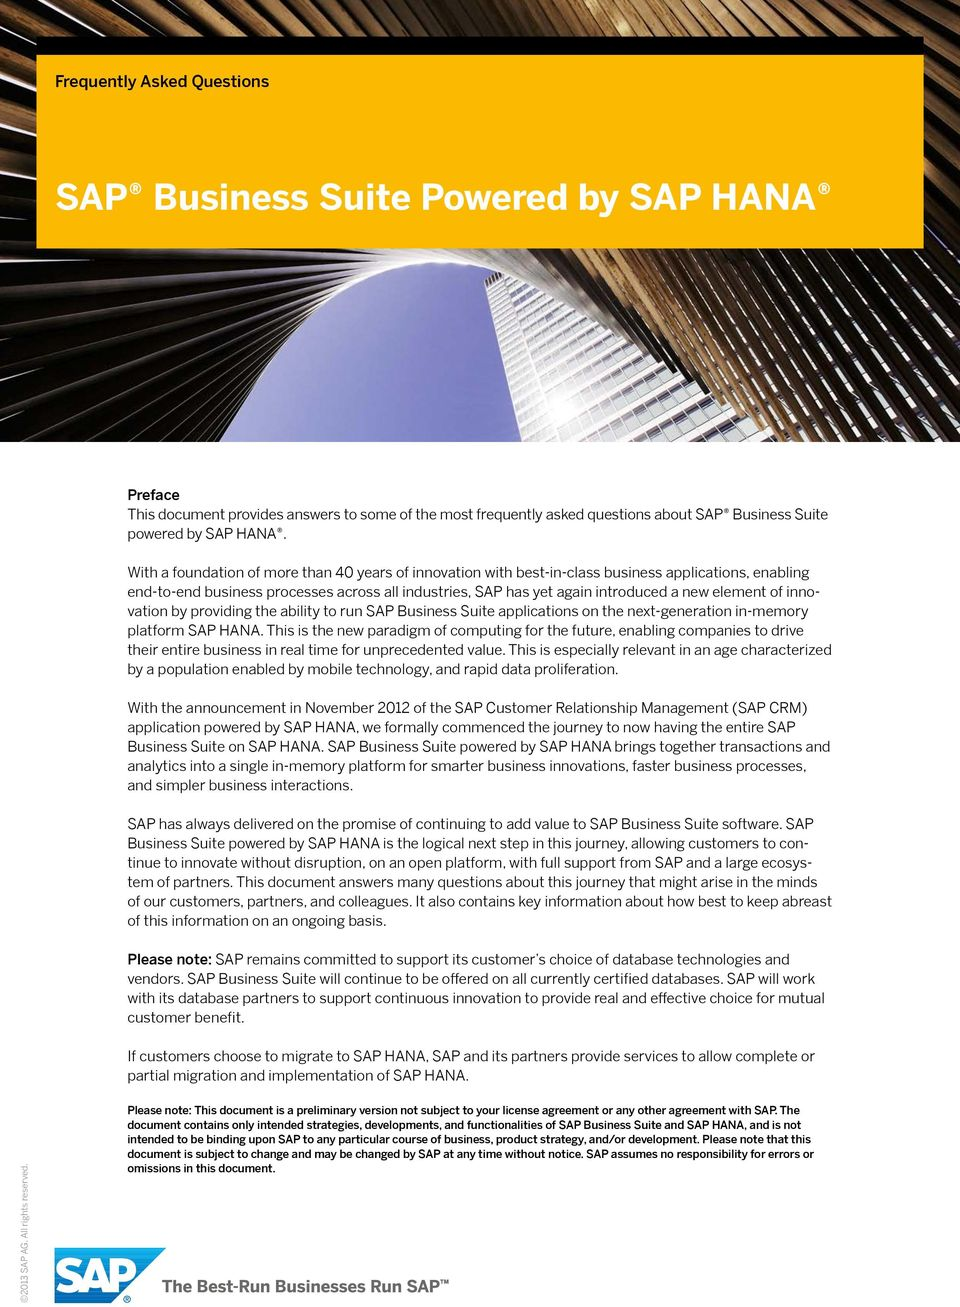 element of innovation by providing the ability to run SAP Business Suite applications on the next-generation in-memory platform SAP HANA.